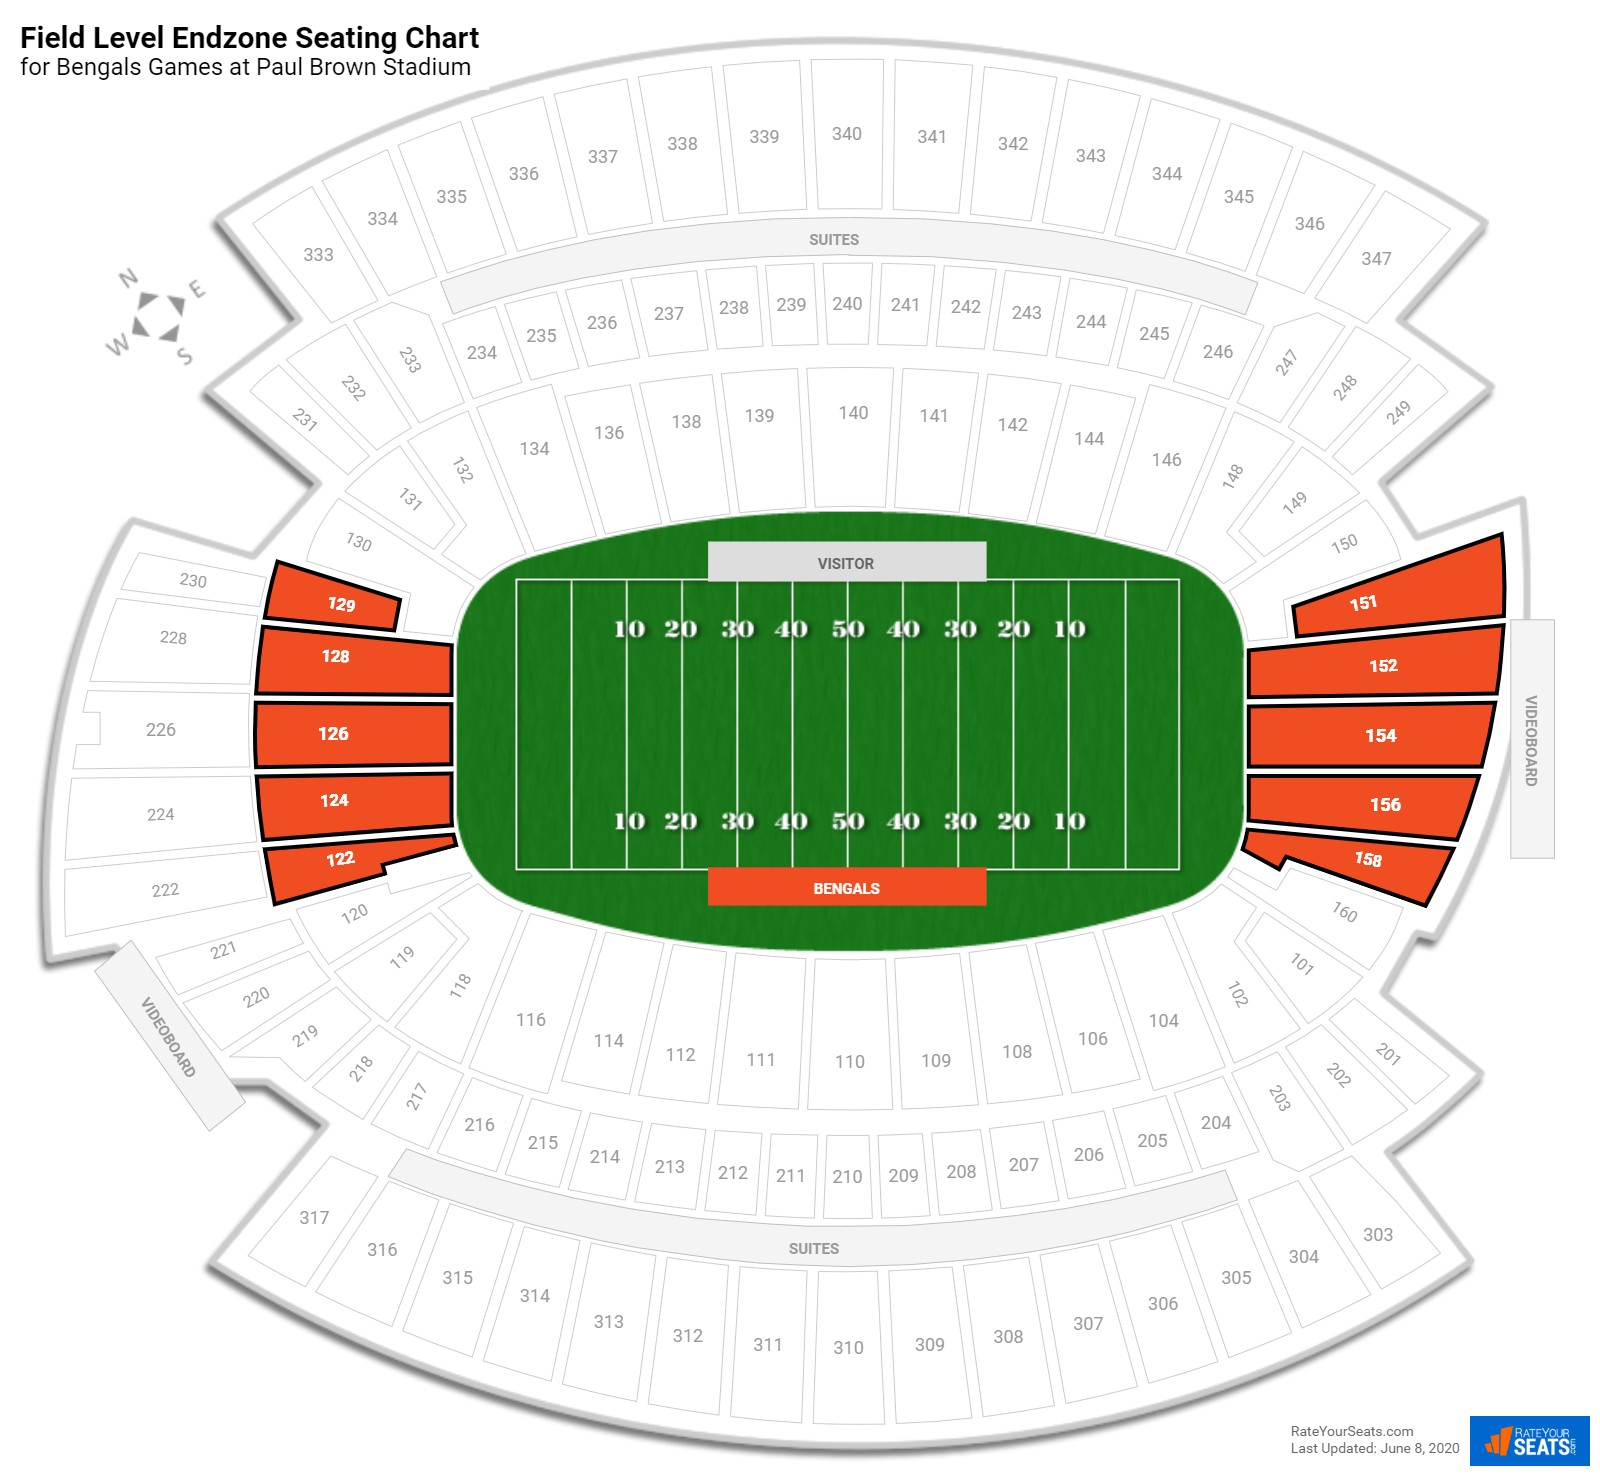 Paul Brown Stadium Field Level Endzone seating chart